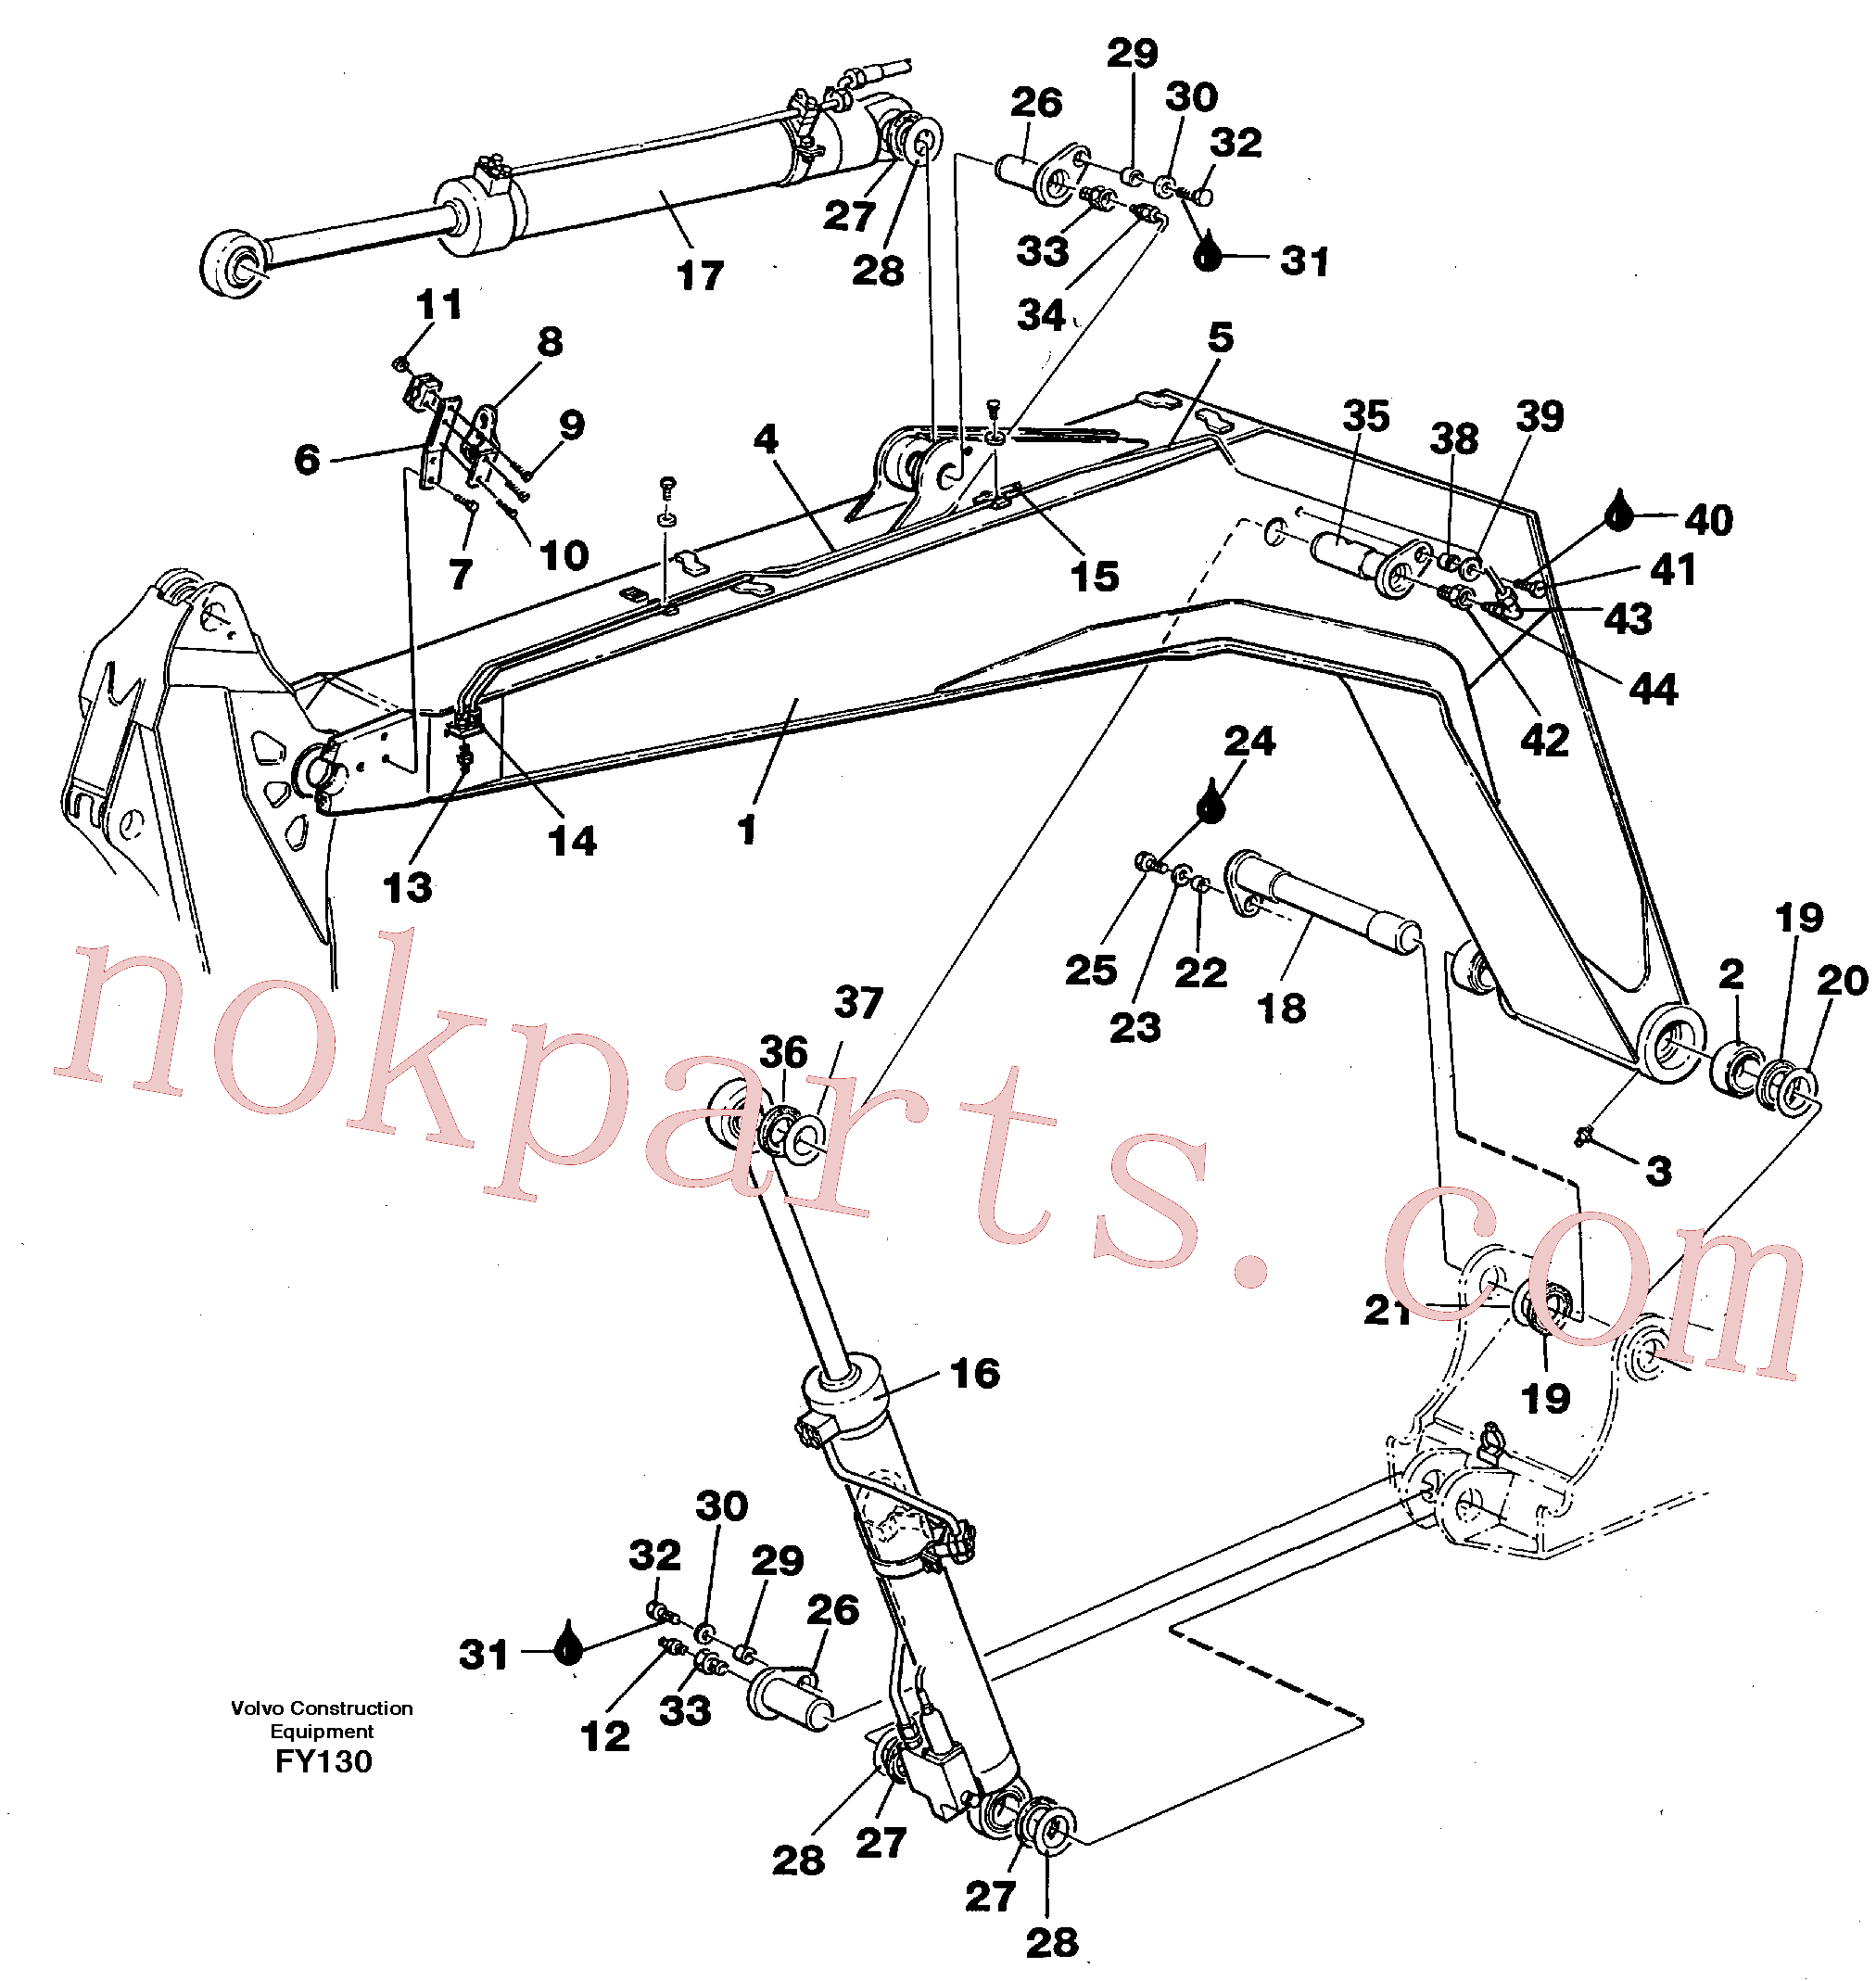 VOE955317 for Volvo Backhoe boom 4,40m(FY130 assembly)